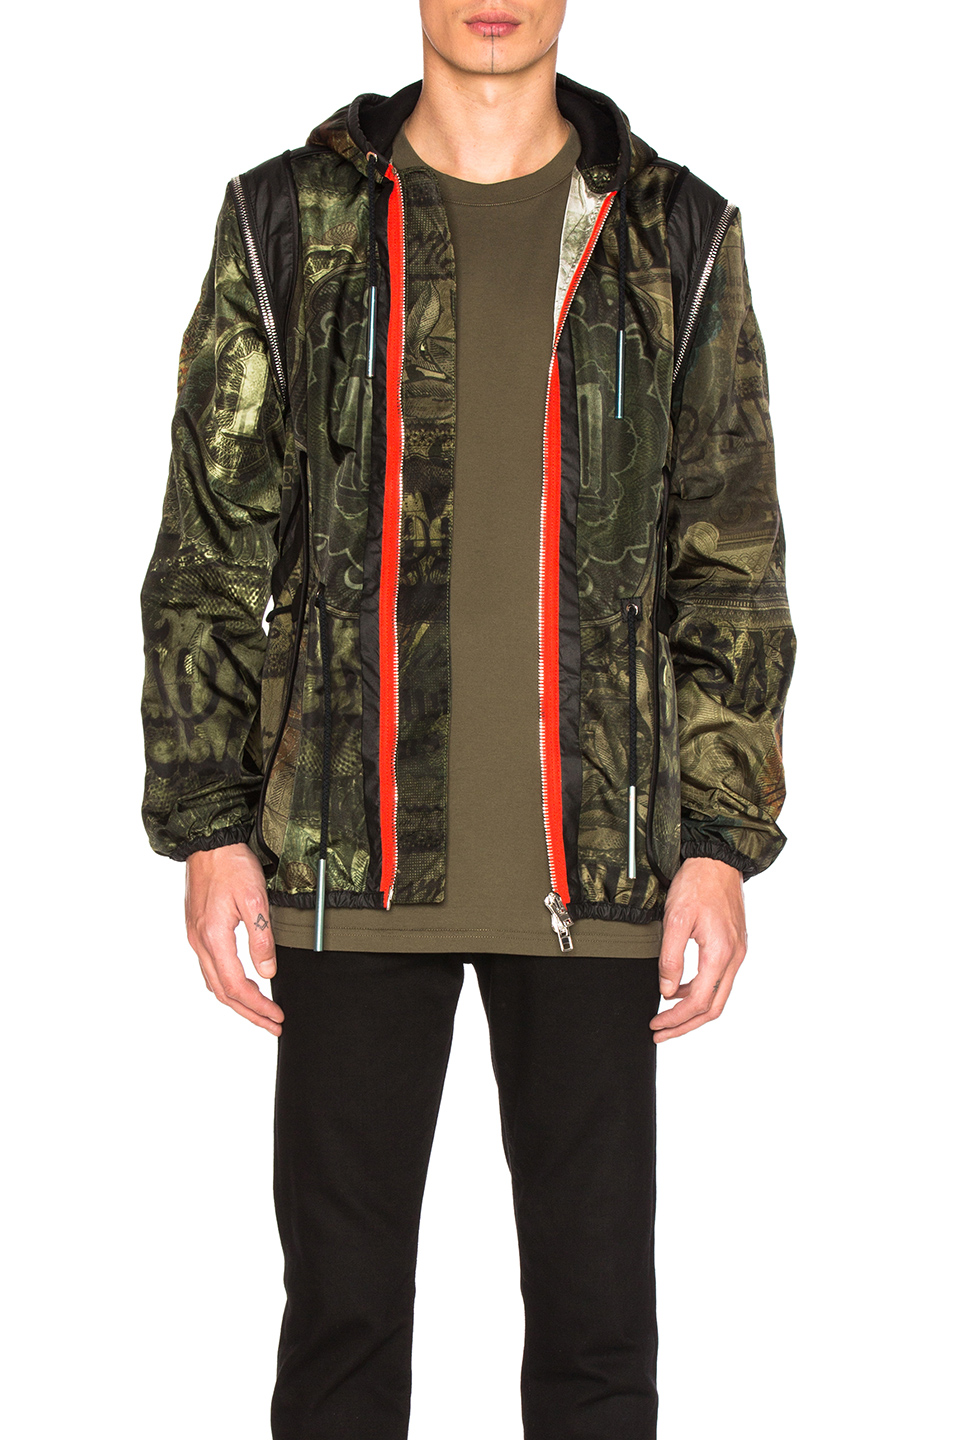 Photo of Givenchy Printed Lightweight Jacket in Green,Abstract - shop Givenchy menswear